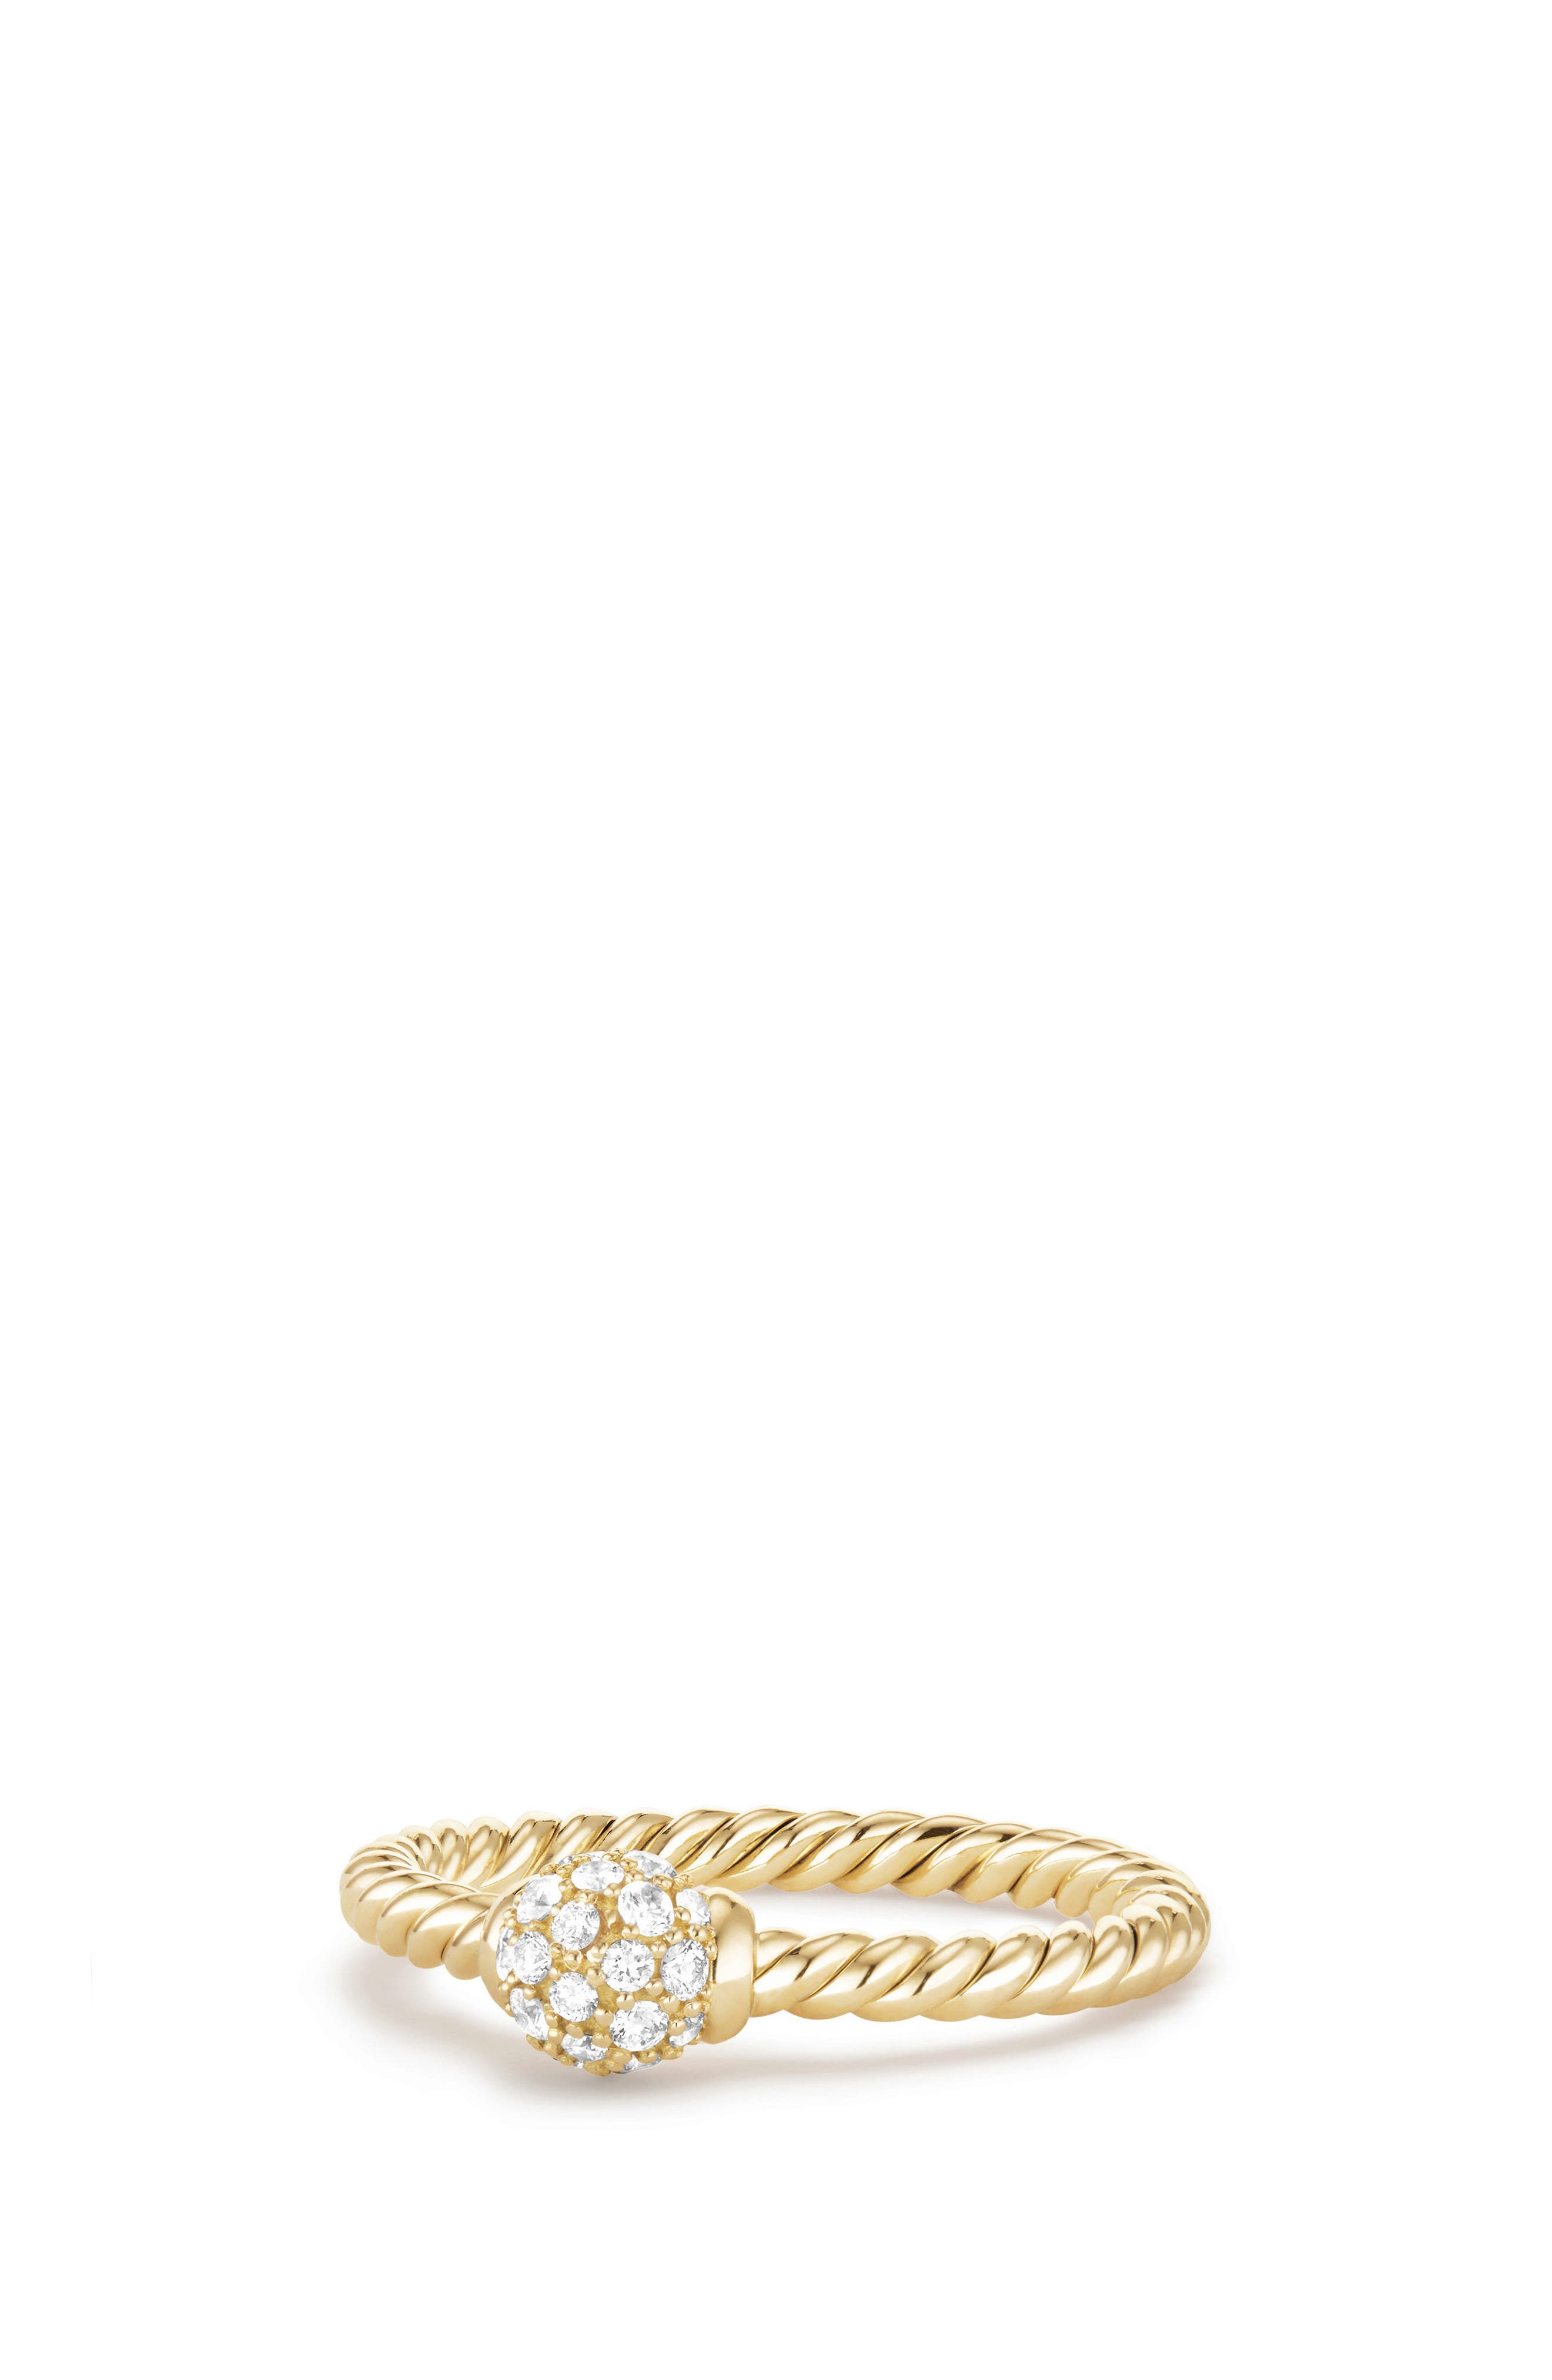 Solari Station Ring with Diamonds in 18K Gold,                         Main,                         color, Yellow Gold/ Diamond